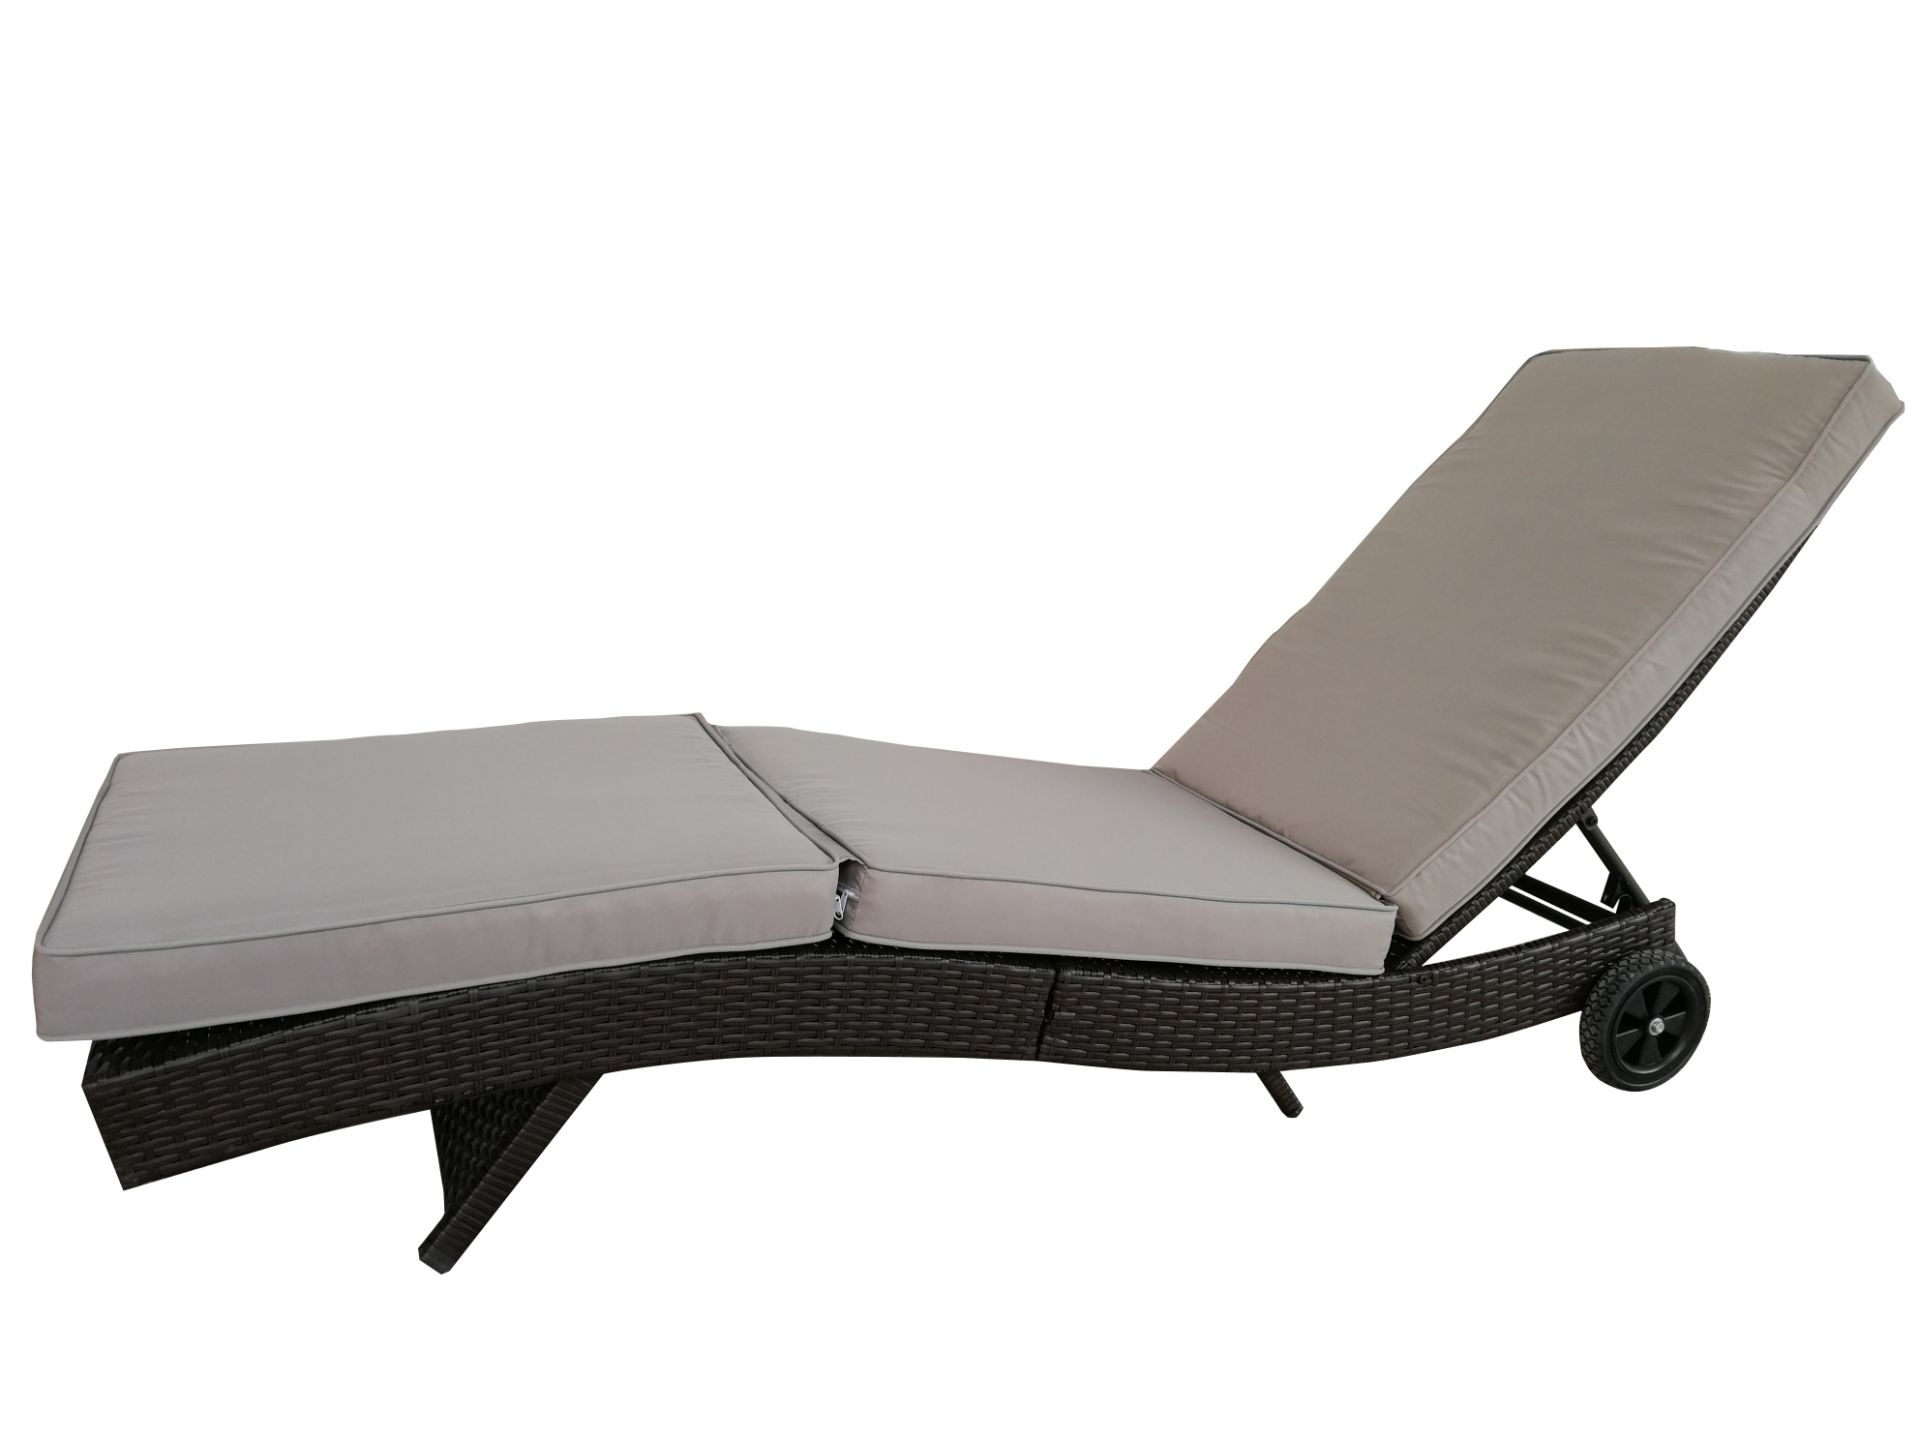 + VAT Brand New Chelsea Garden Company Dark Brown Rattan Sunbed - Steel Framed - Include Cushion - - Image 4 of 5